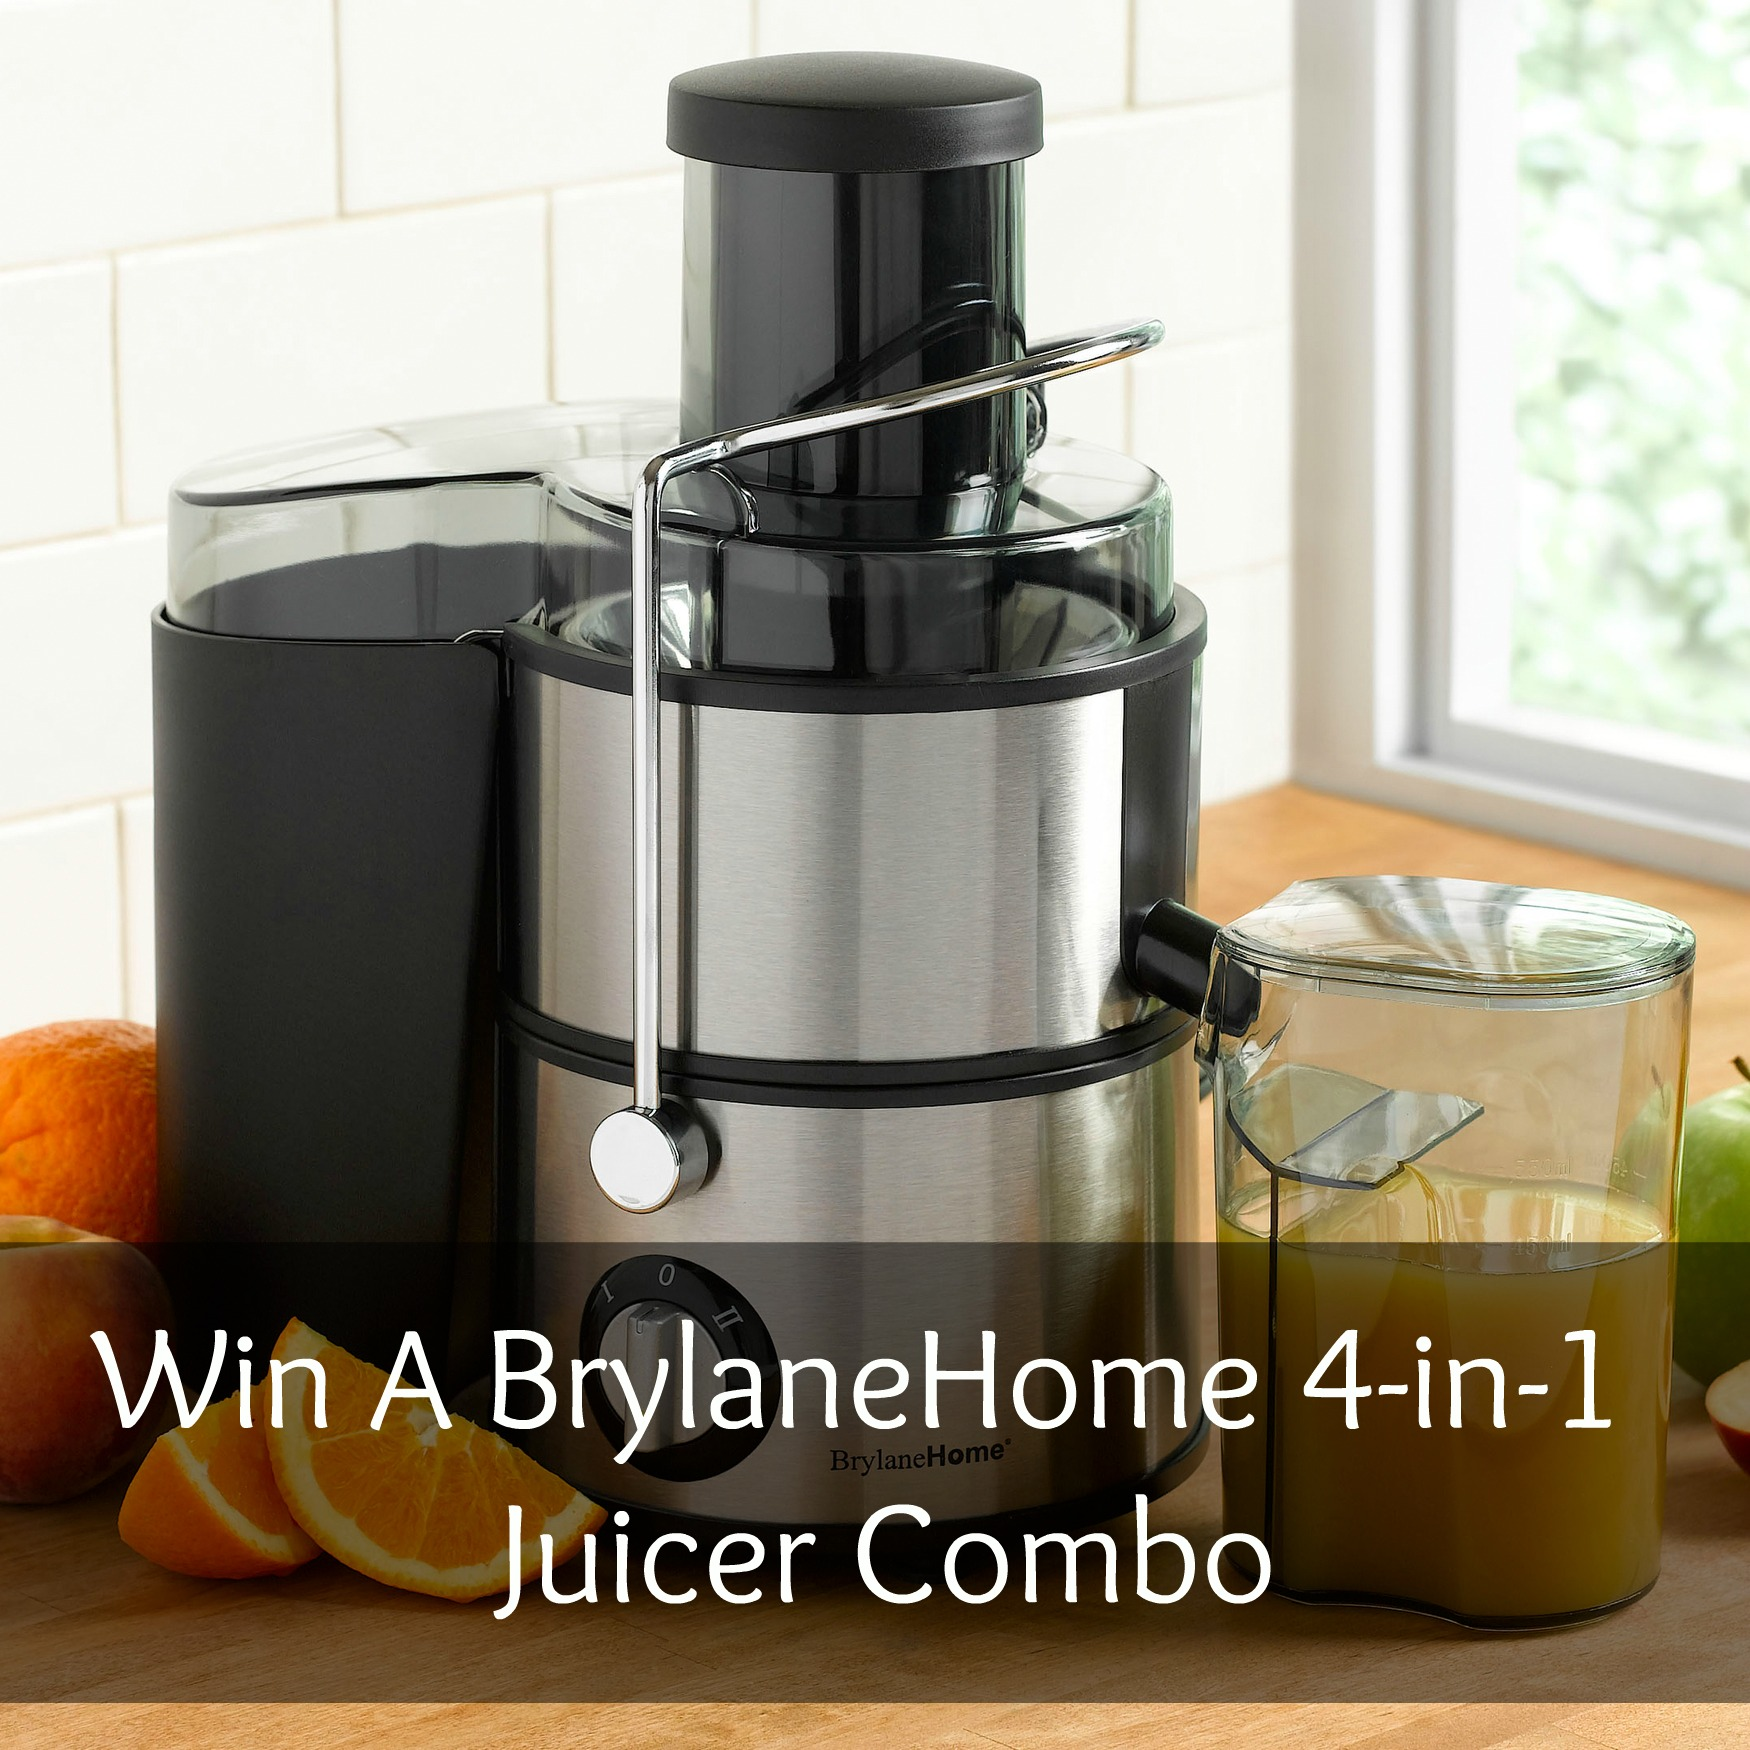 BrylaneHome 4-in-1 Juicer Combo Review